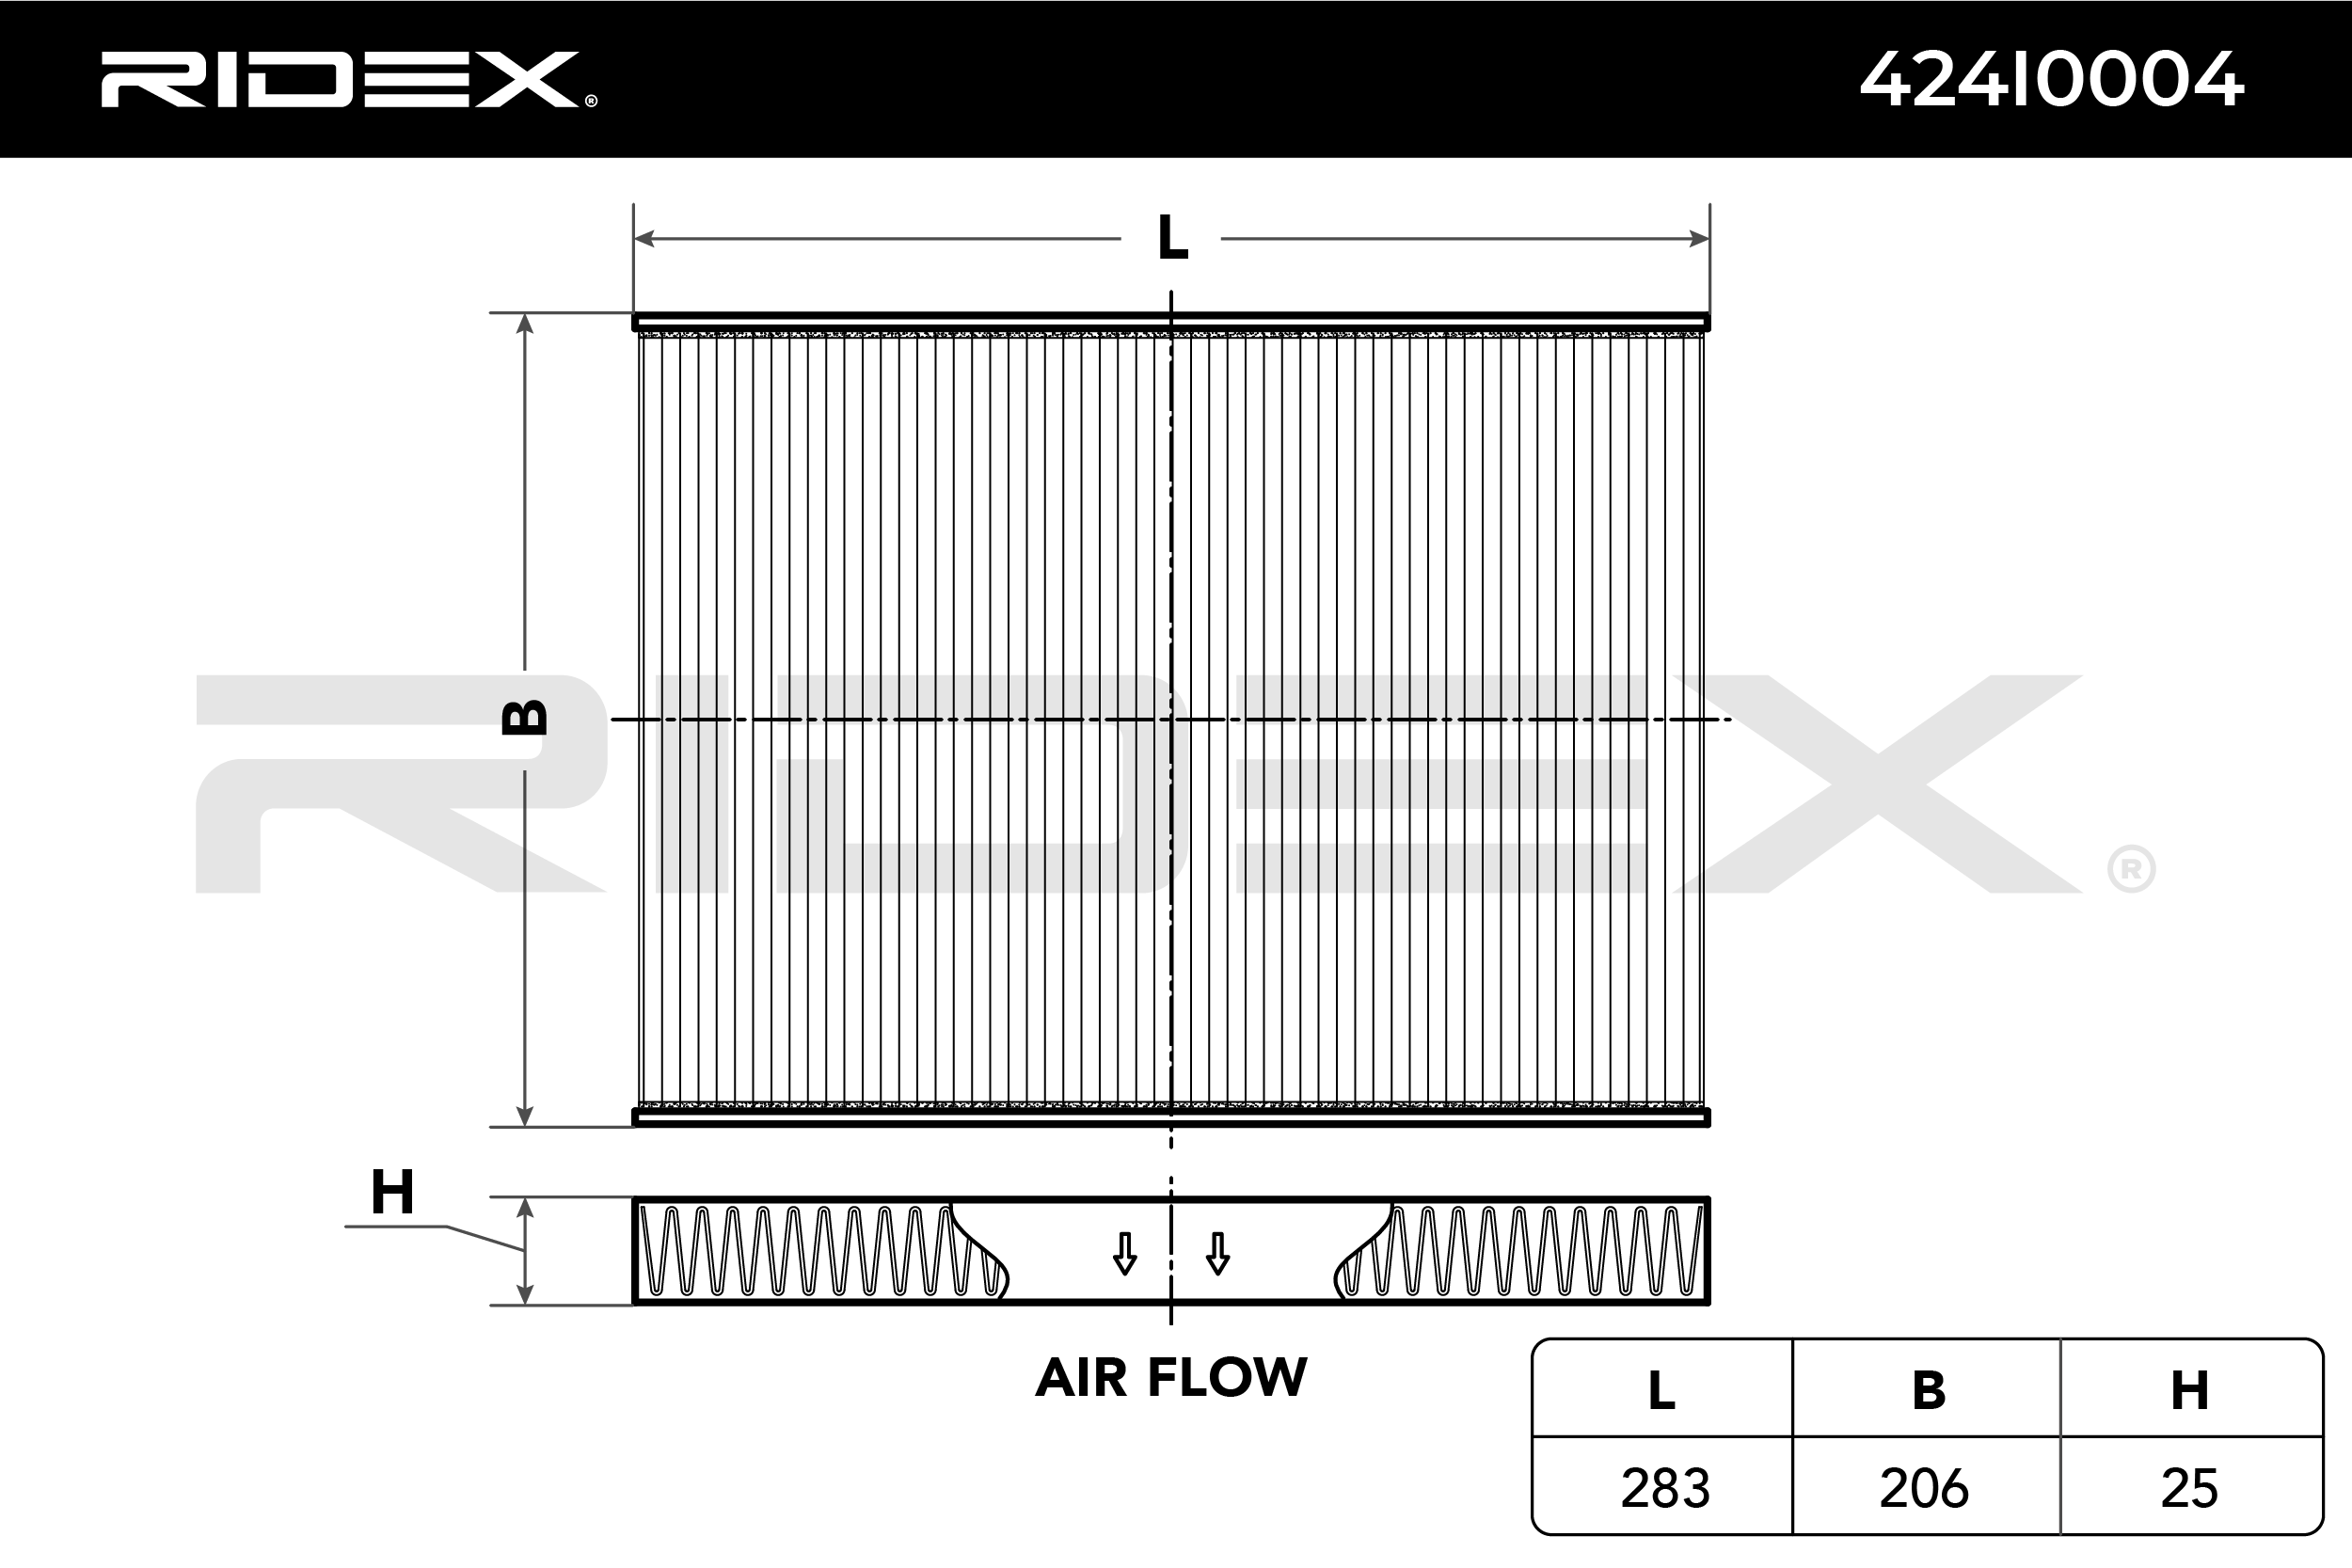 Cabin Air Filter RIDEX 424I0004 expert knowledge